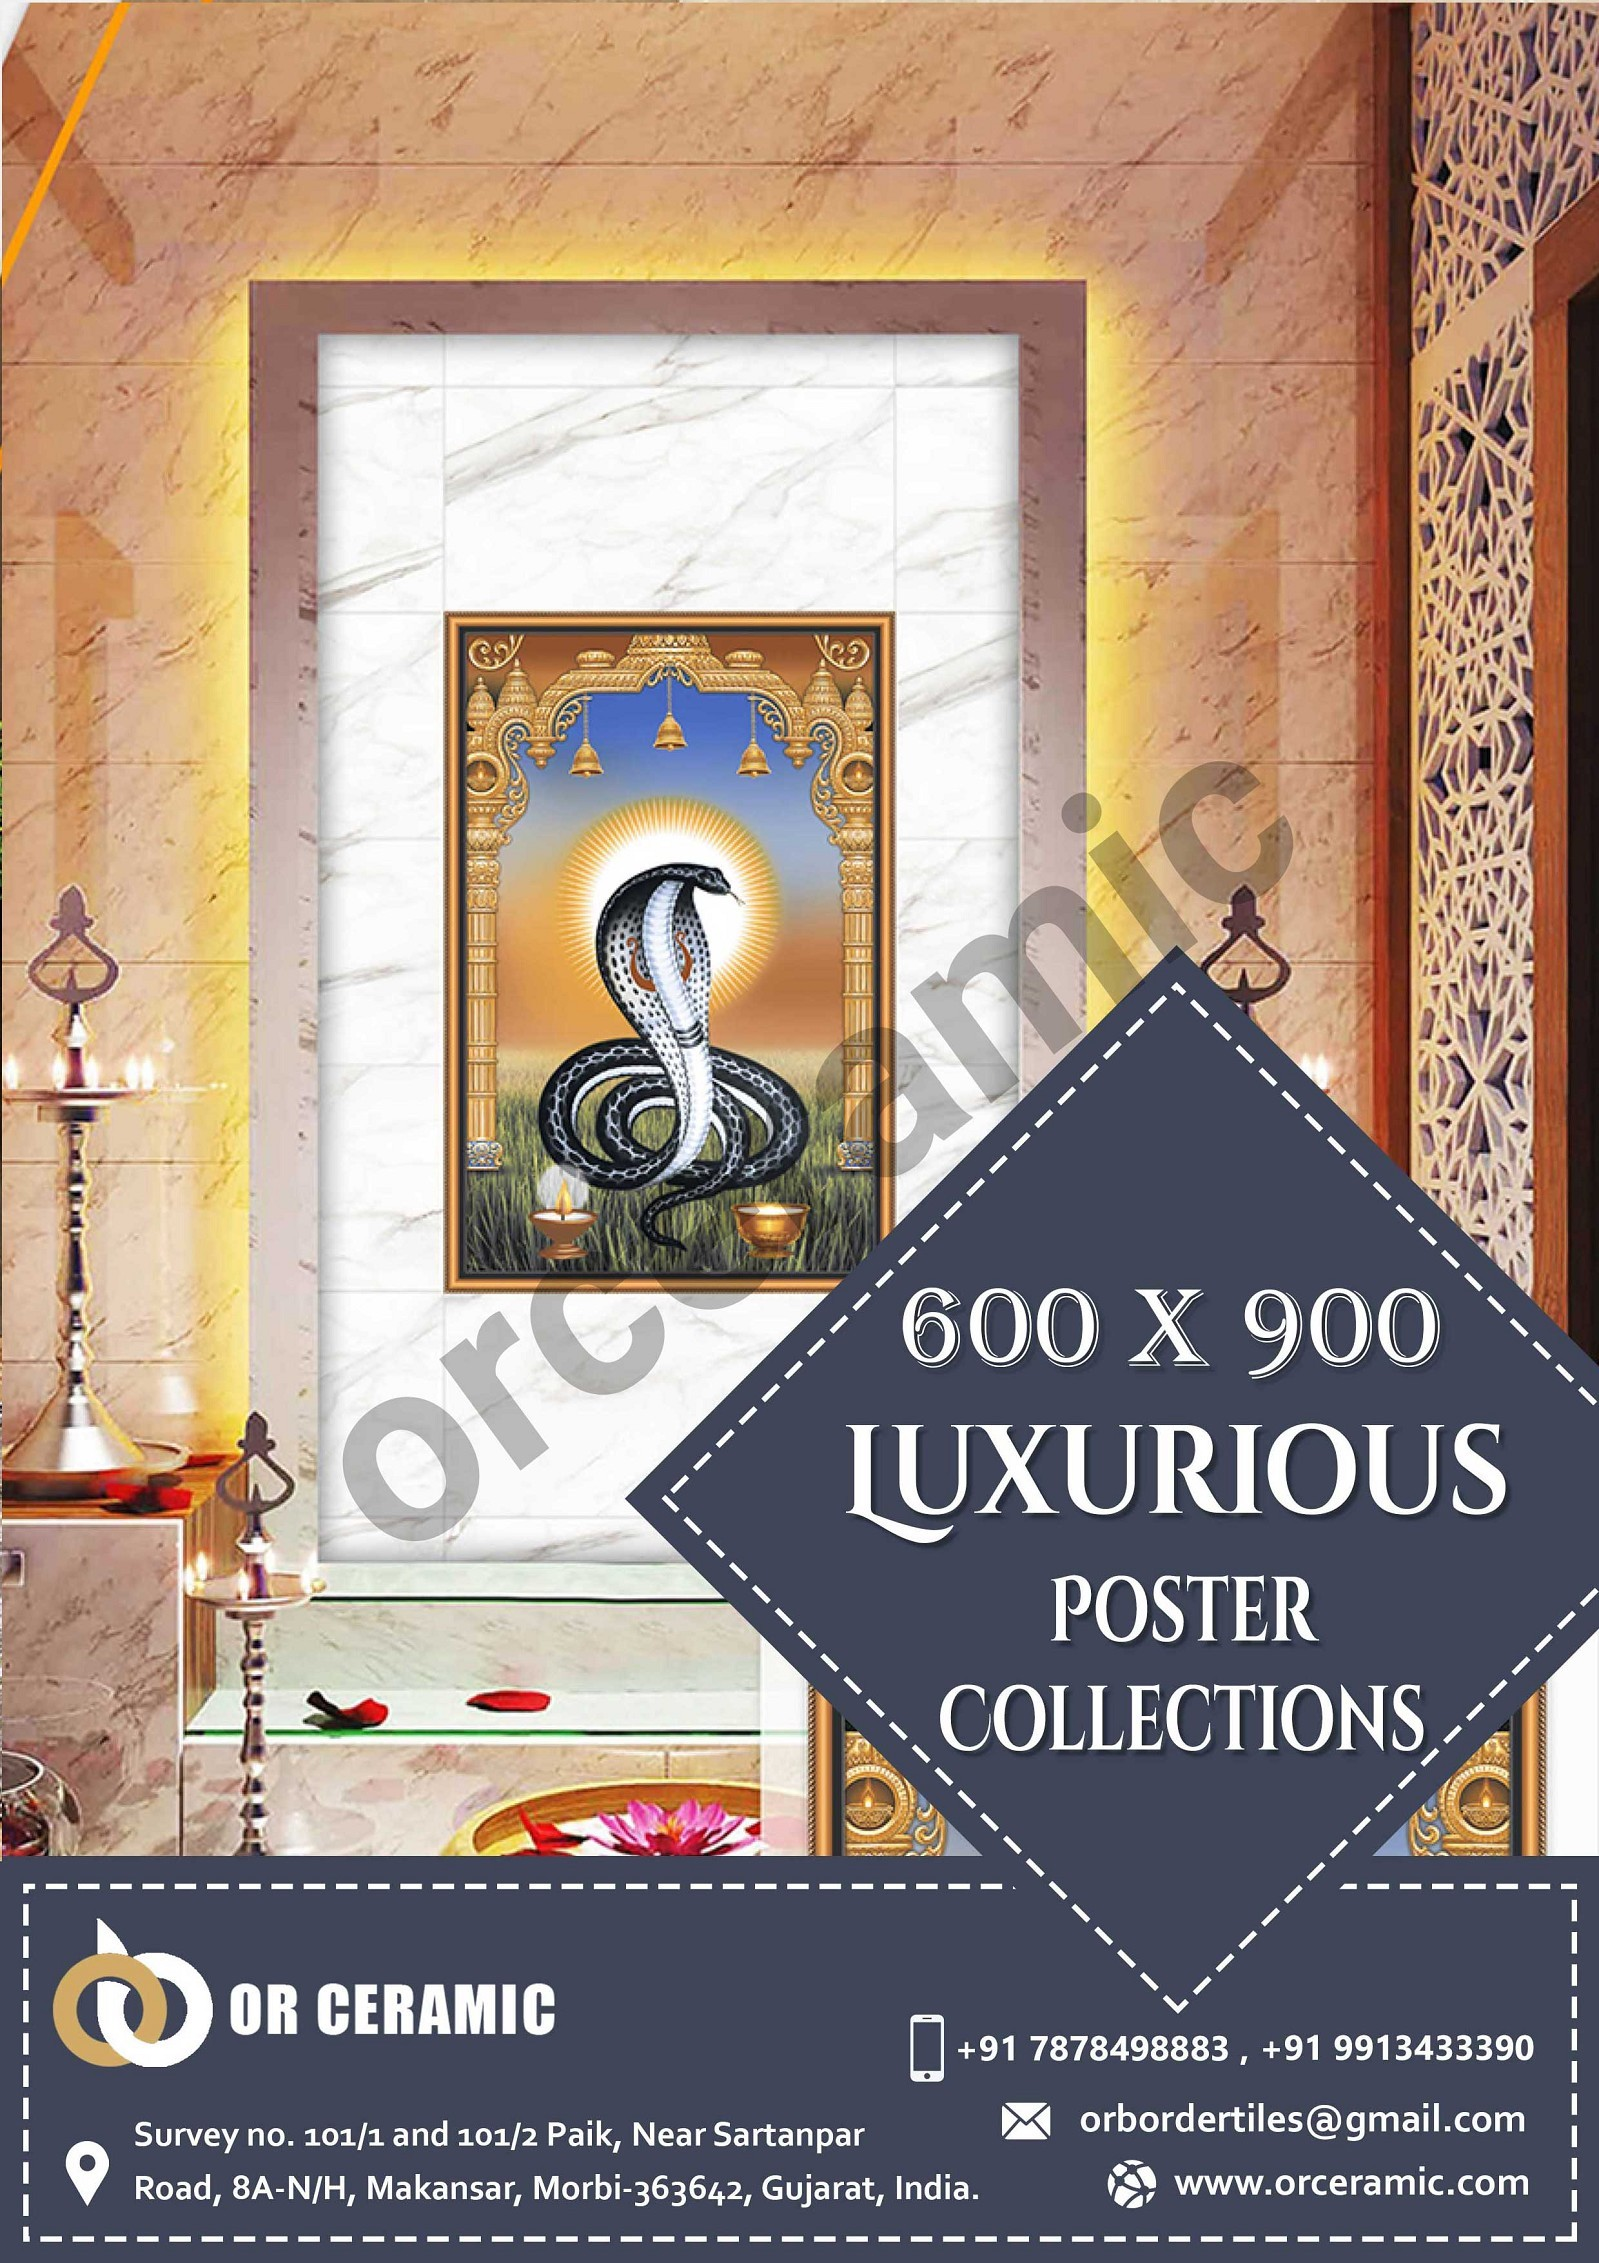 Matt Poster Wall Tiles Manufacturers in India | Best Wall Tiles Company